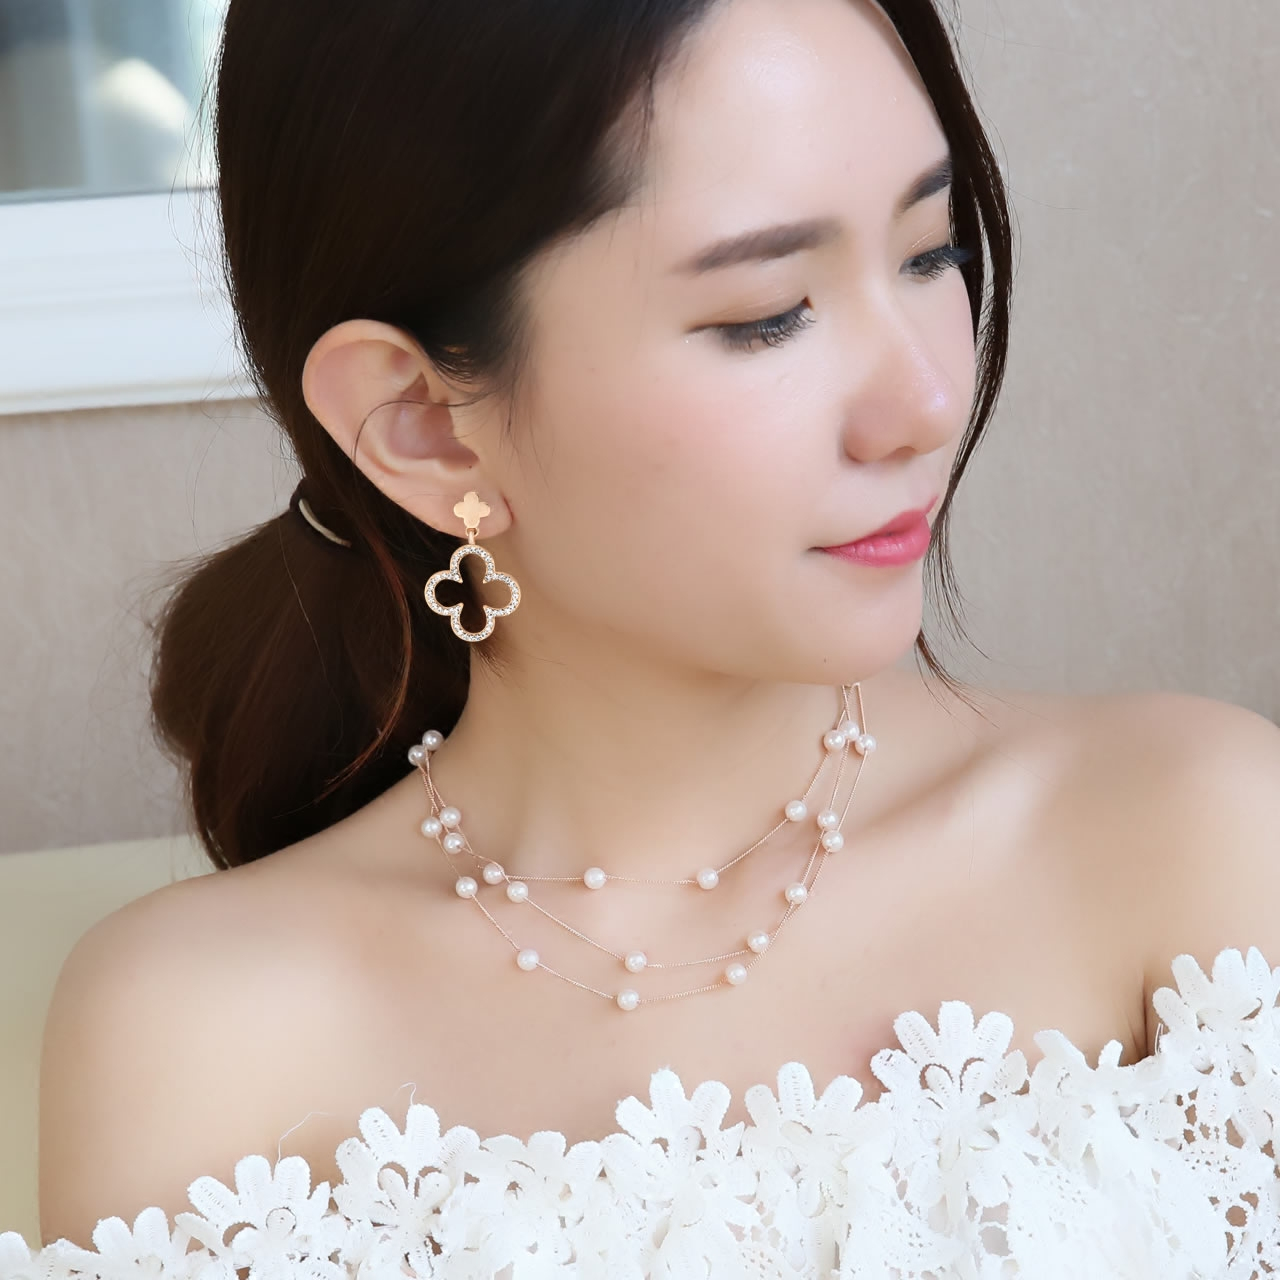 Buy 2 to send 1 gold charm earrings ms. earrings 2016 new four leaves and flowers day south korea elegant earrings earrings temperament Dress